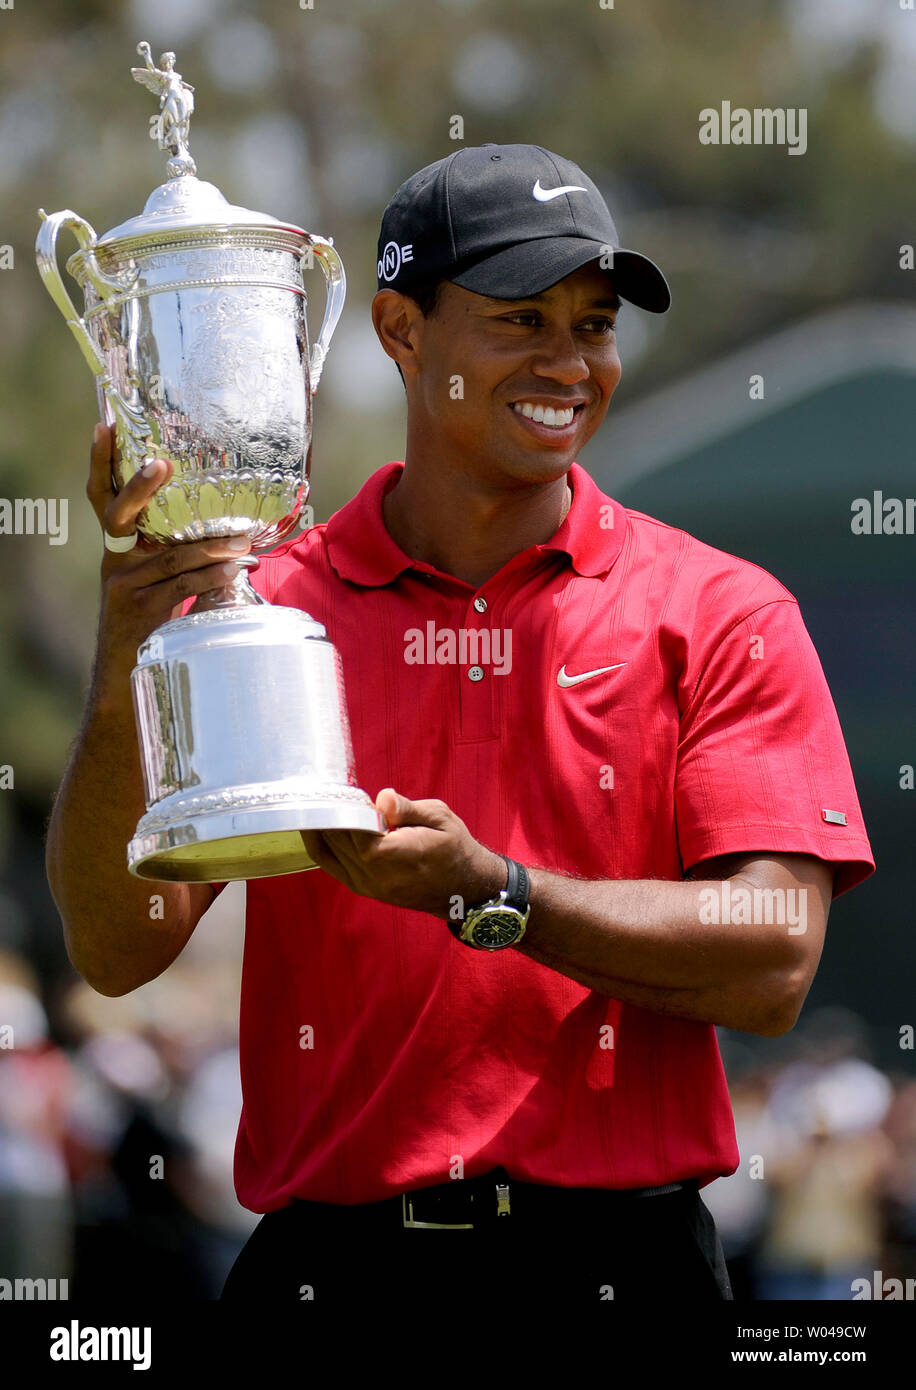 Tiger Woods hold the U.S. Open Trophy after winning the 108th U.S. Open  at Torrey Pines Golf Course in San Diego on June 16, 2008. Woods defeated Rocco Mediate by one stroke after a playoff round. (UPI Photo/Kevin Dietsch) Stock Photo